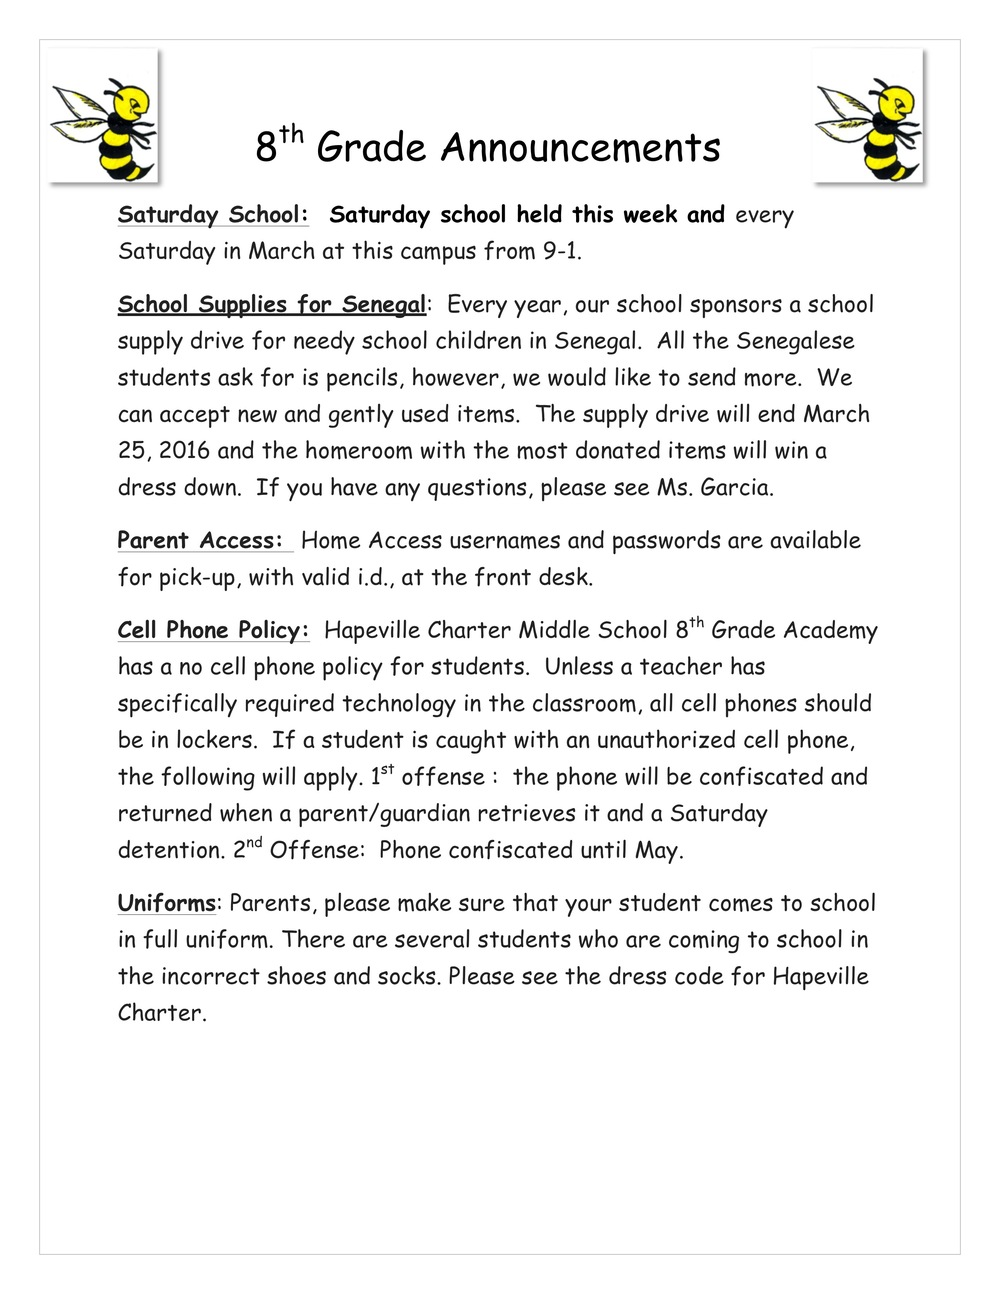 Newsletter Image8th grade 3-14 2.jpeg